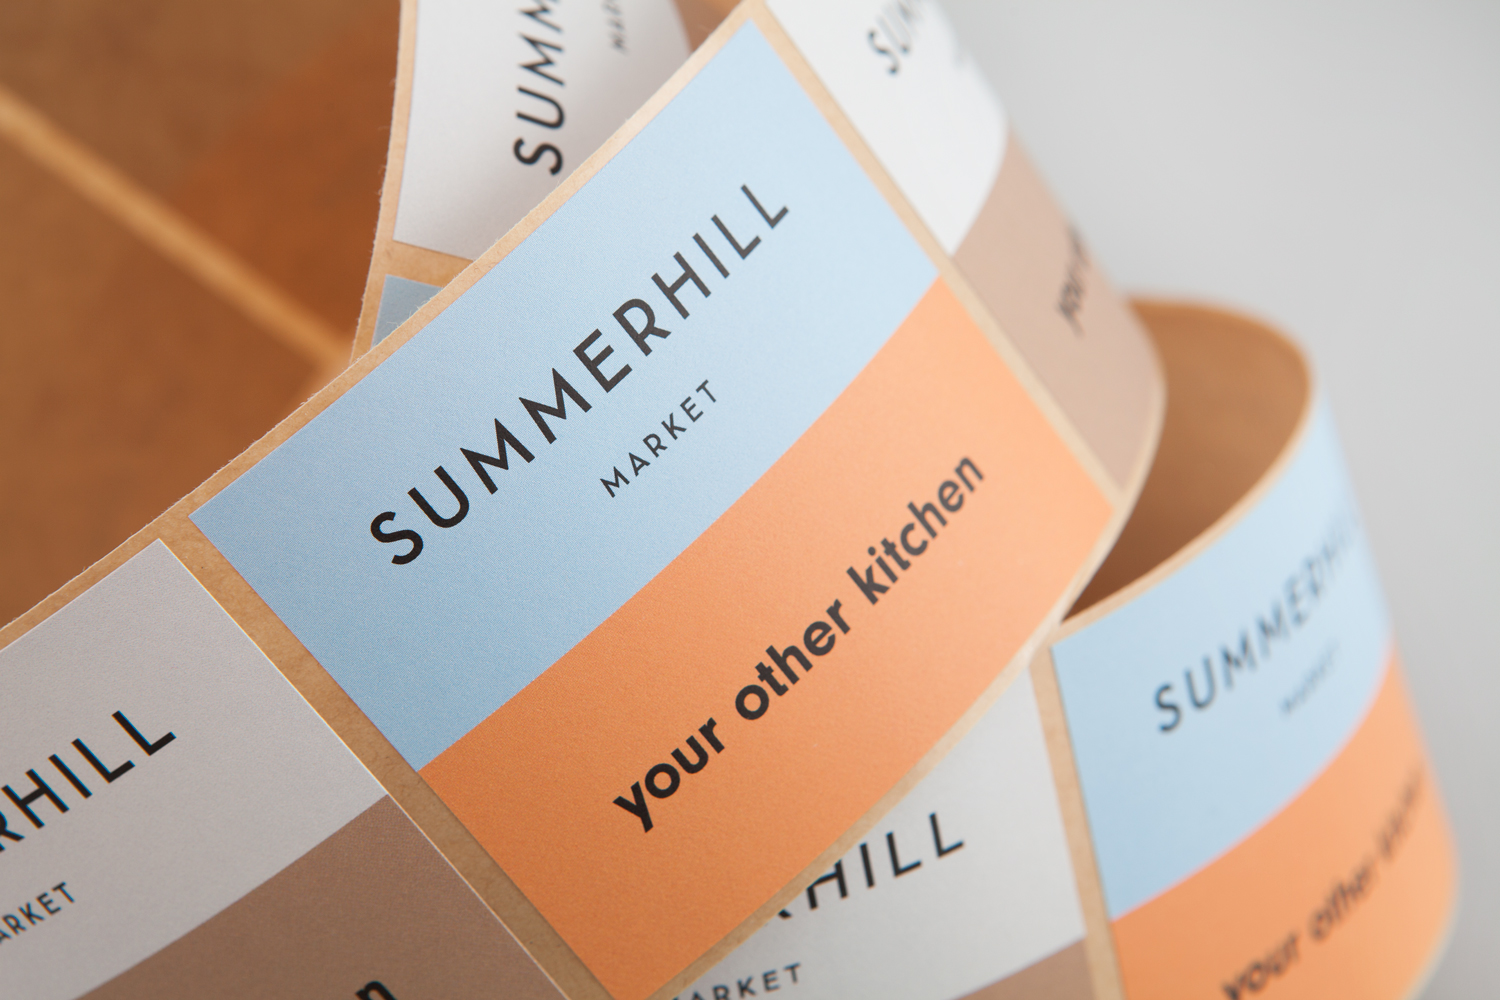 Logotype and stickers designed by Canadian studio Blok for Toronto based boutique grocery store Summerhill Market